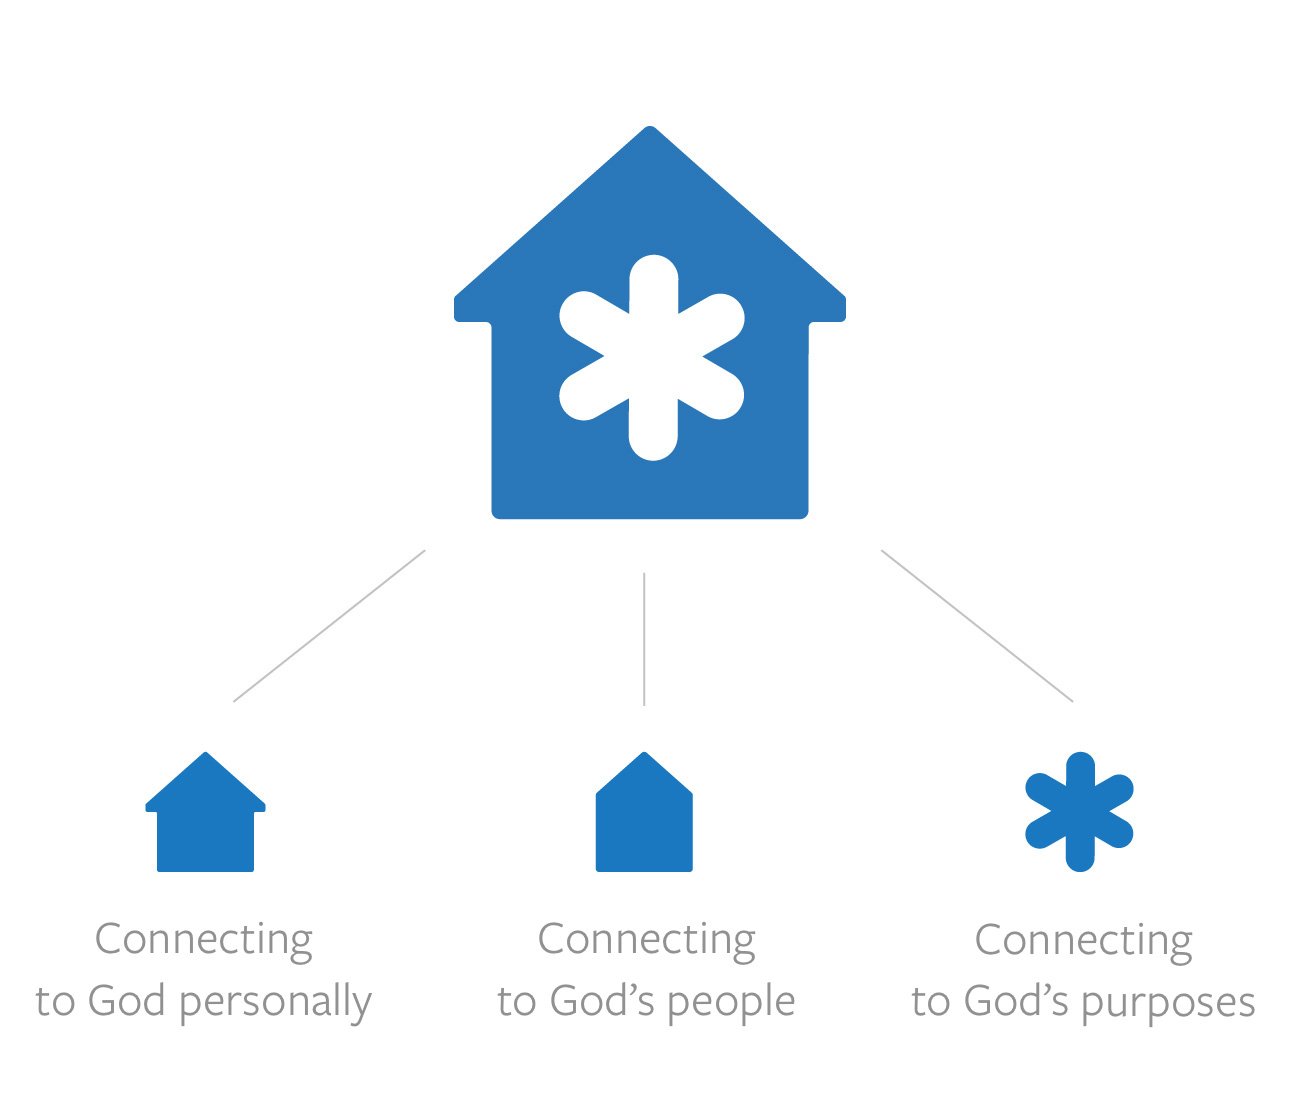 The Highrock House logo is explained. The House represents Connecting to God personally, the Upward arrow refers to God's people, and the Splash refers to God's purposes